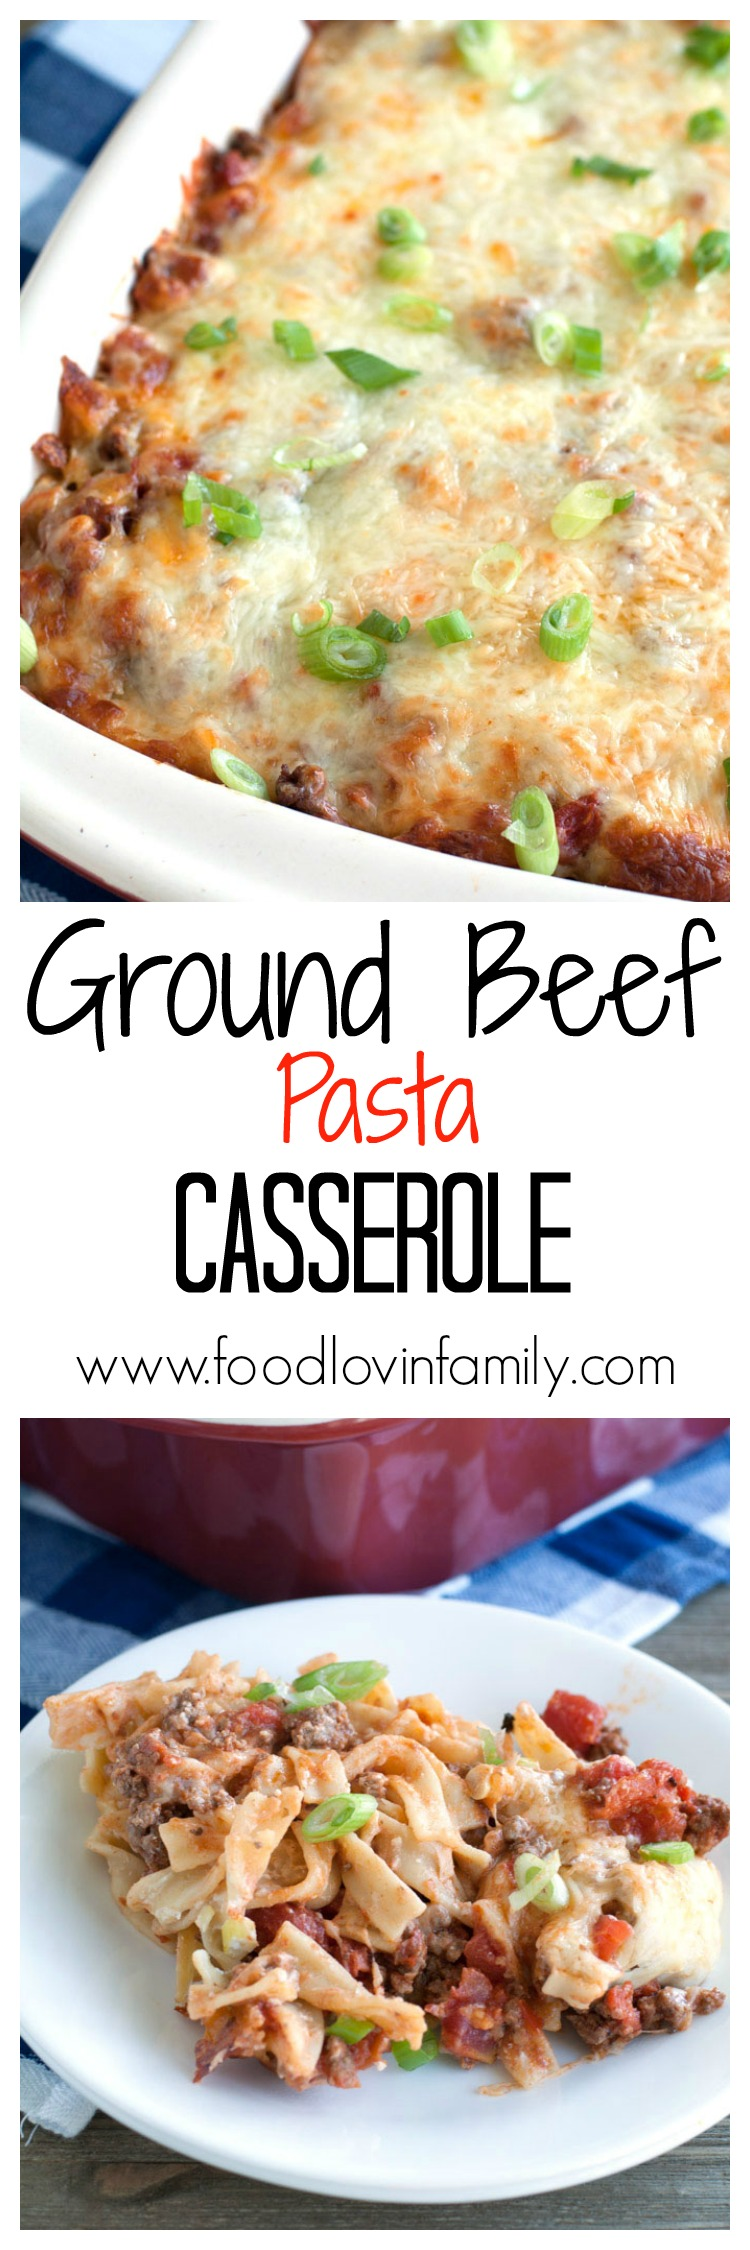 Ground beef pasta casserole filled with beef, cheese, tomatoes, sour cream and egg noodles. This is sure to become a family favorite!